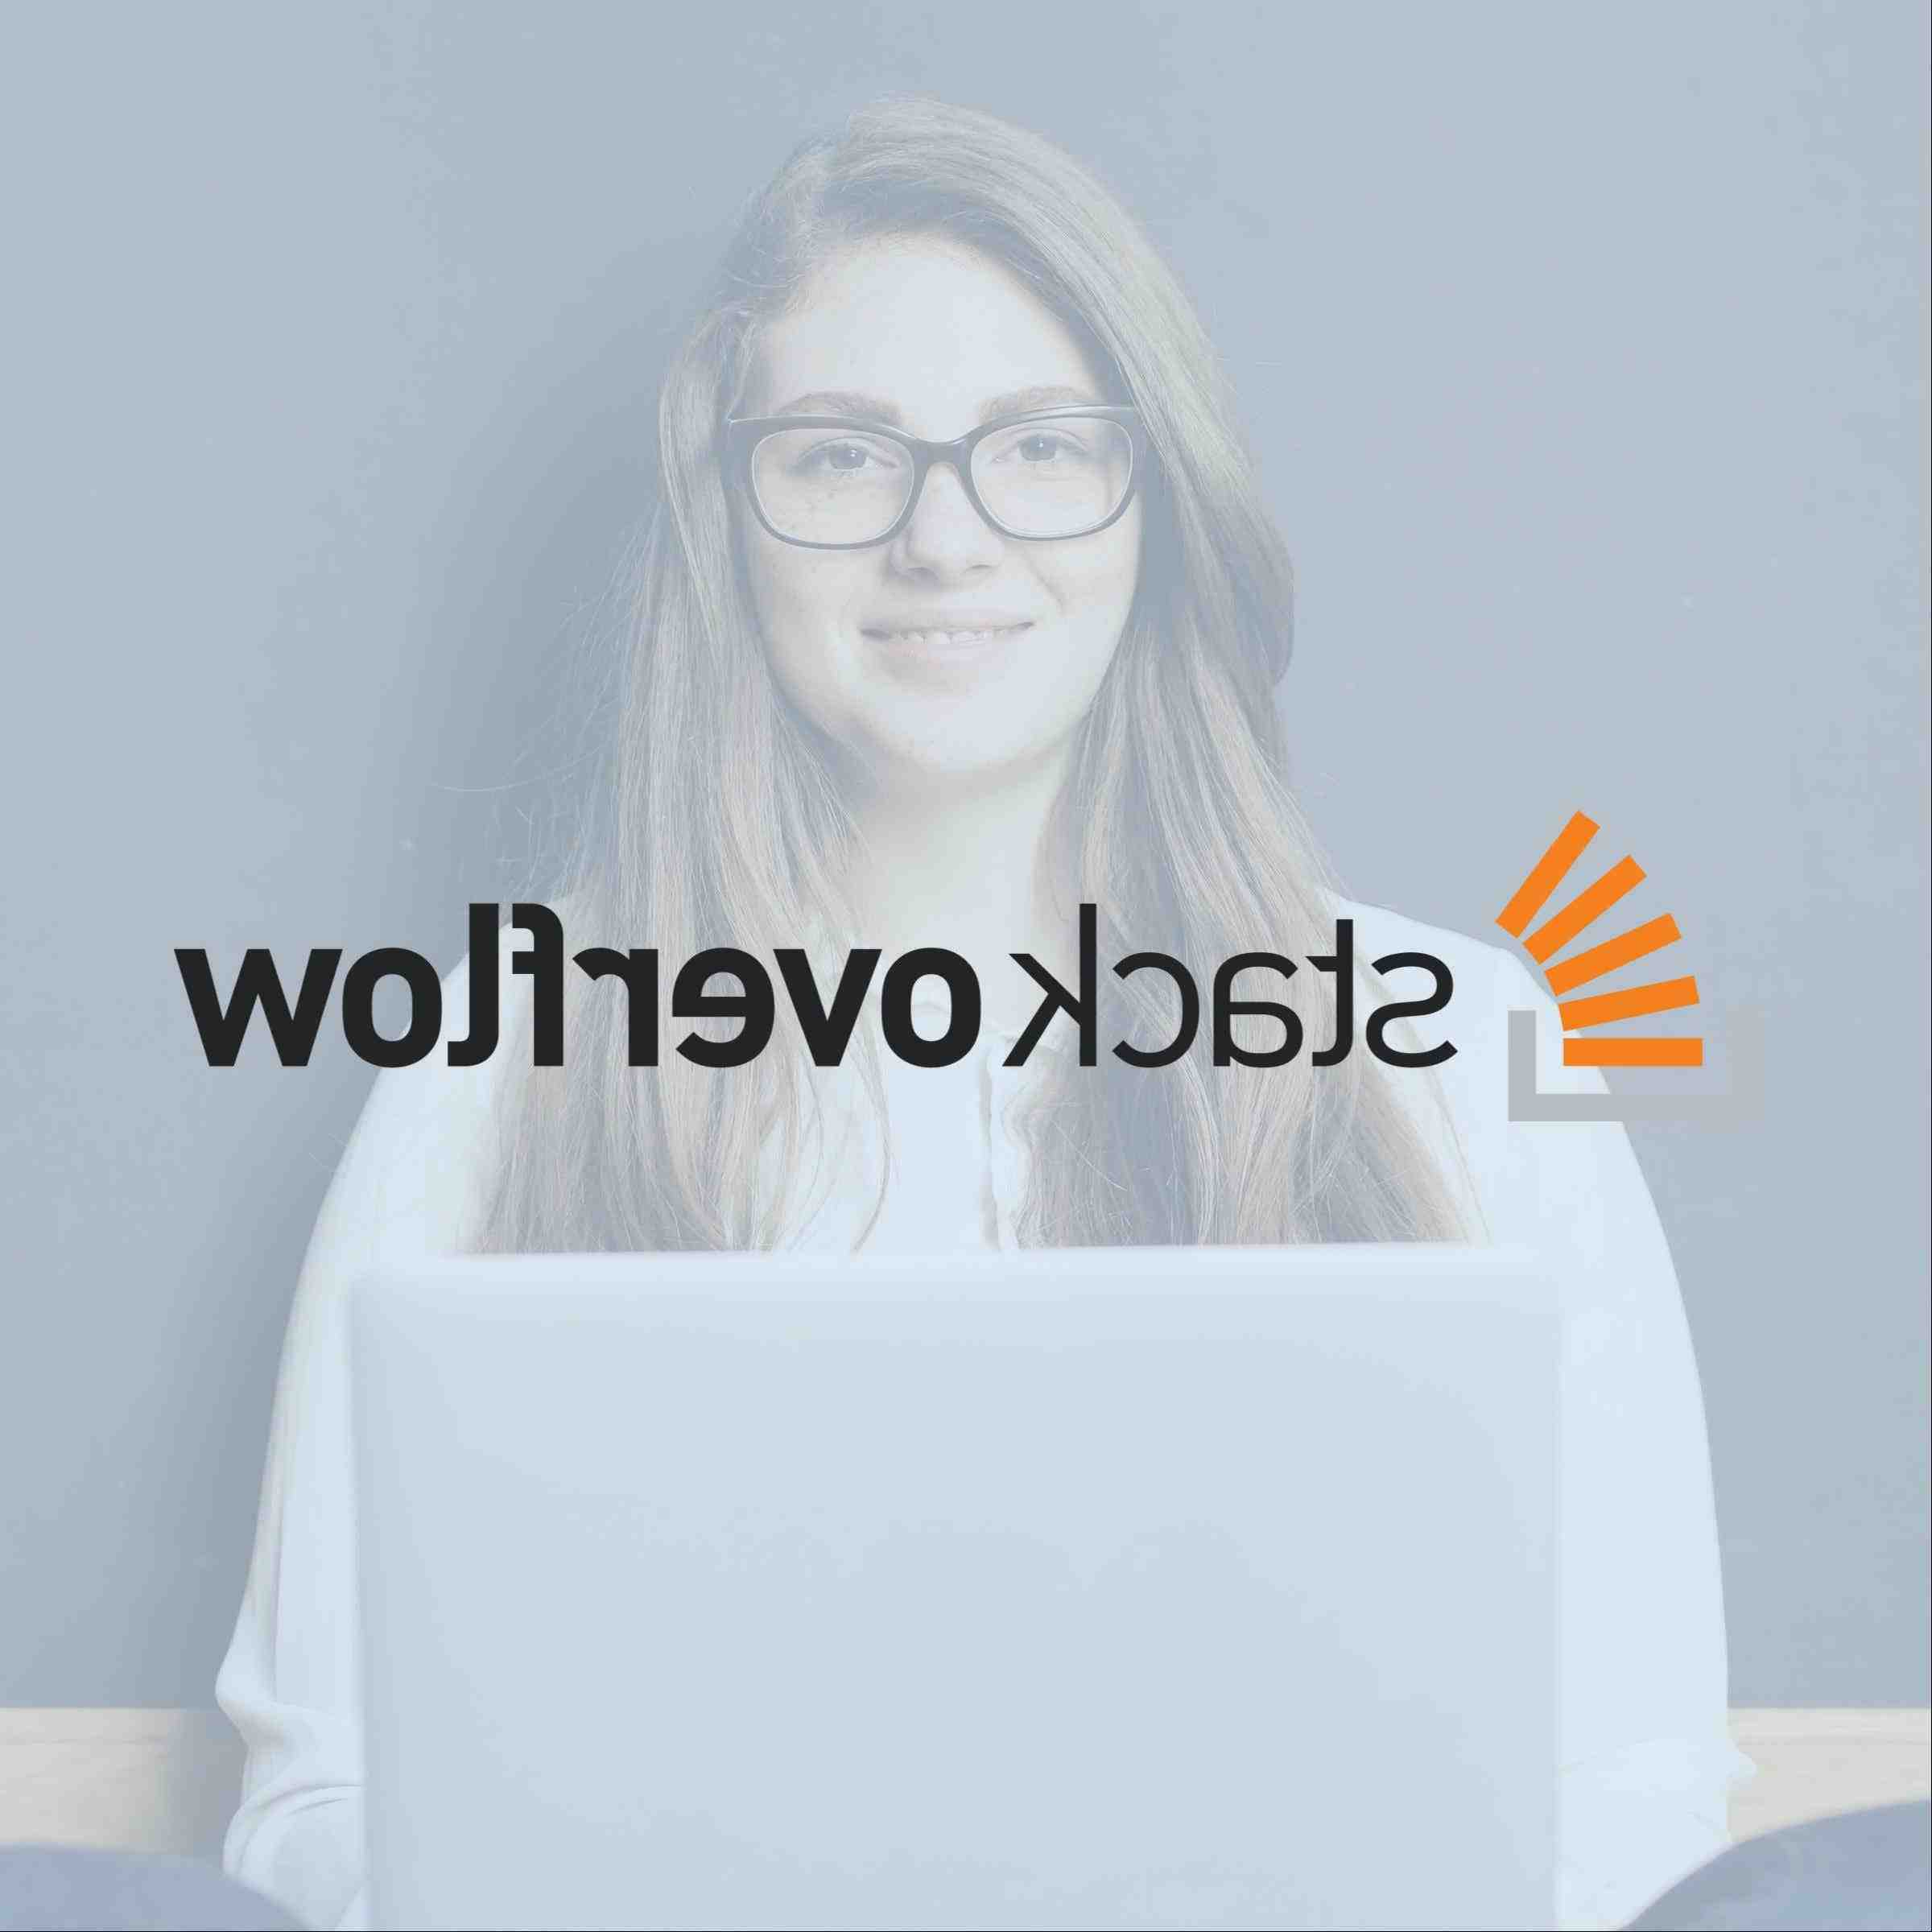 Is StackOverflow good for jobs?